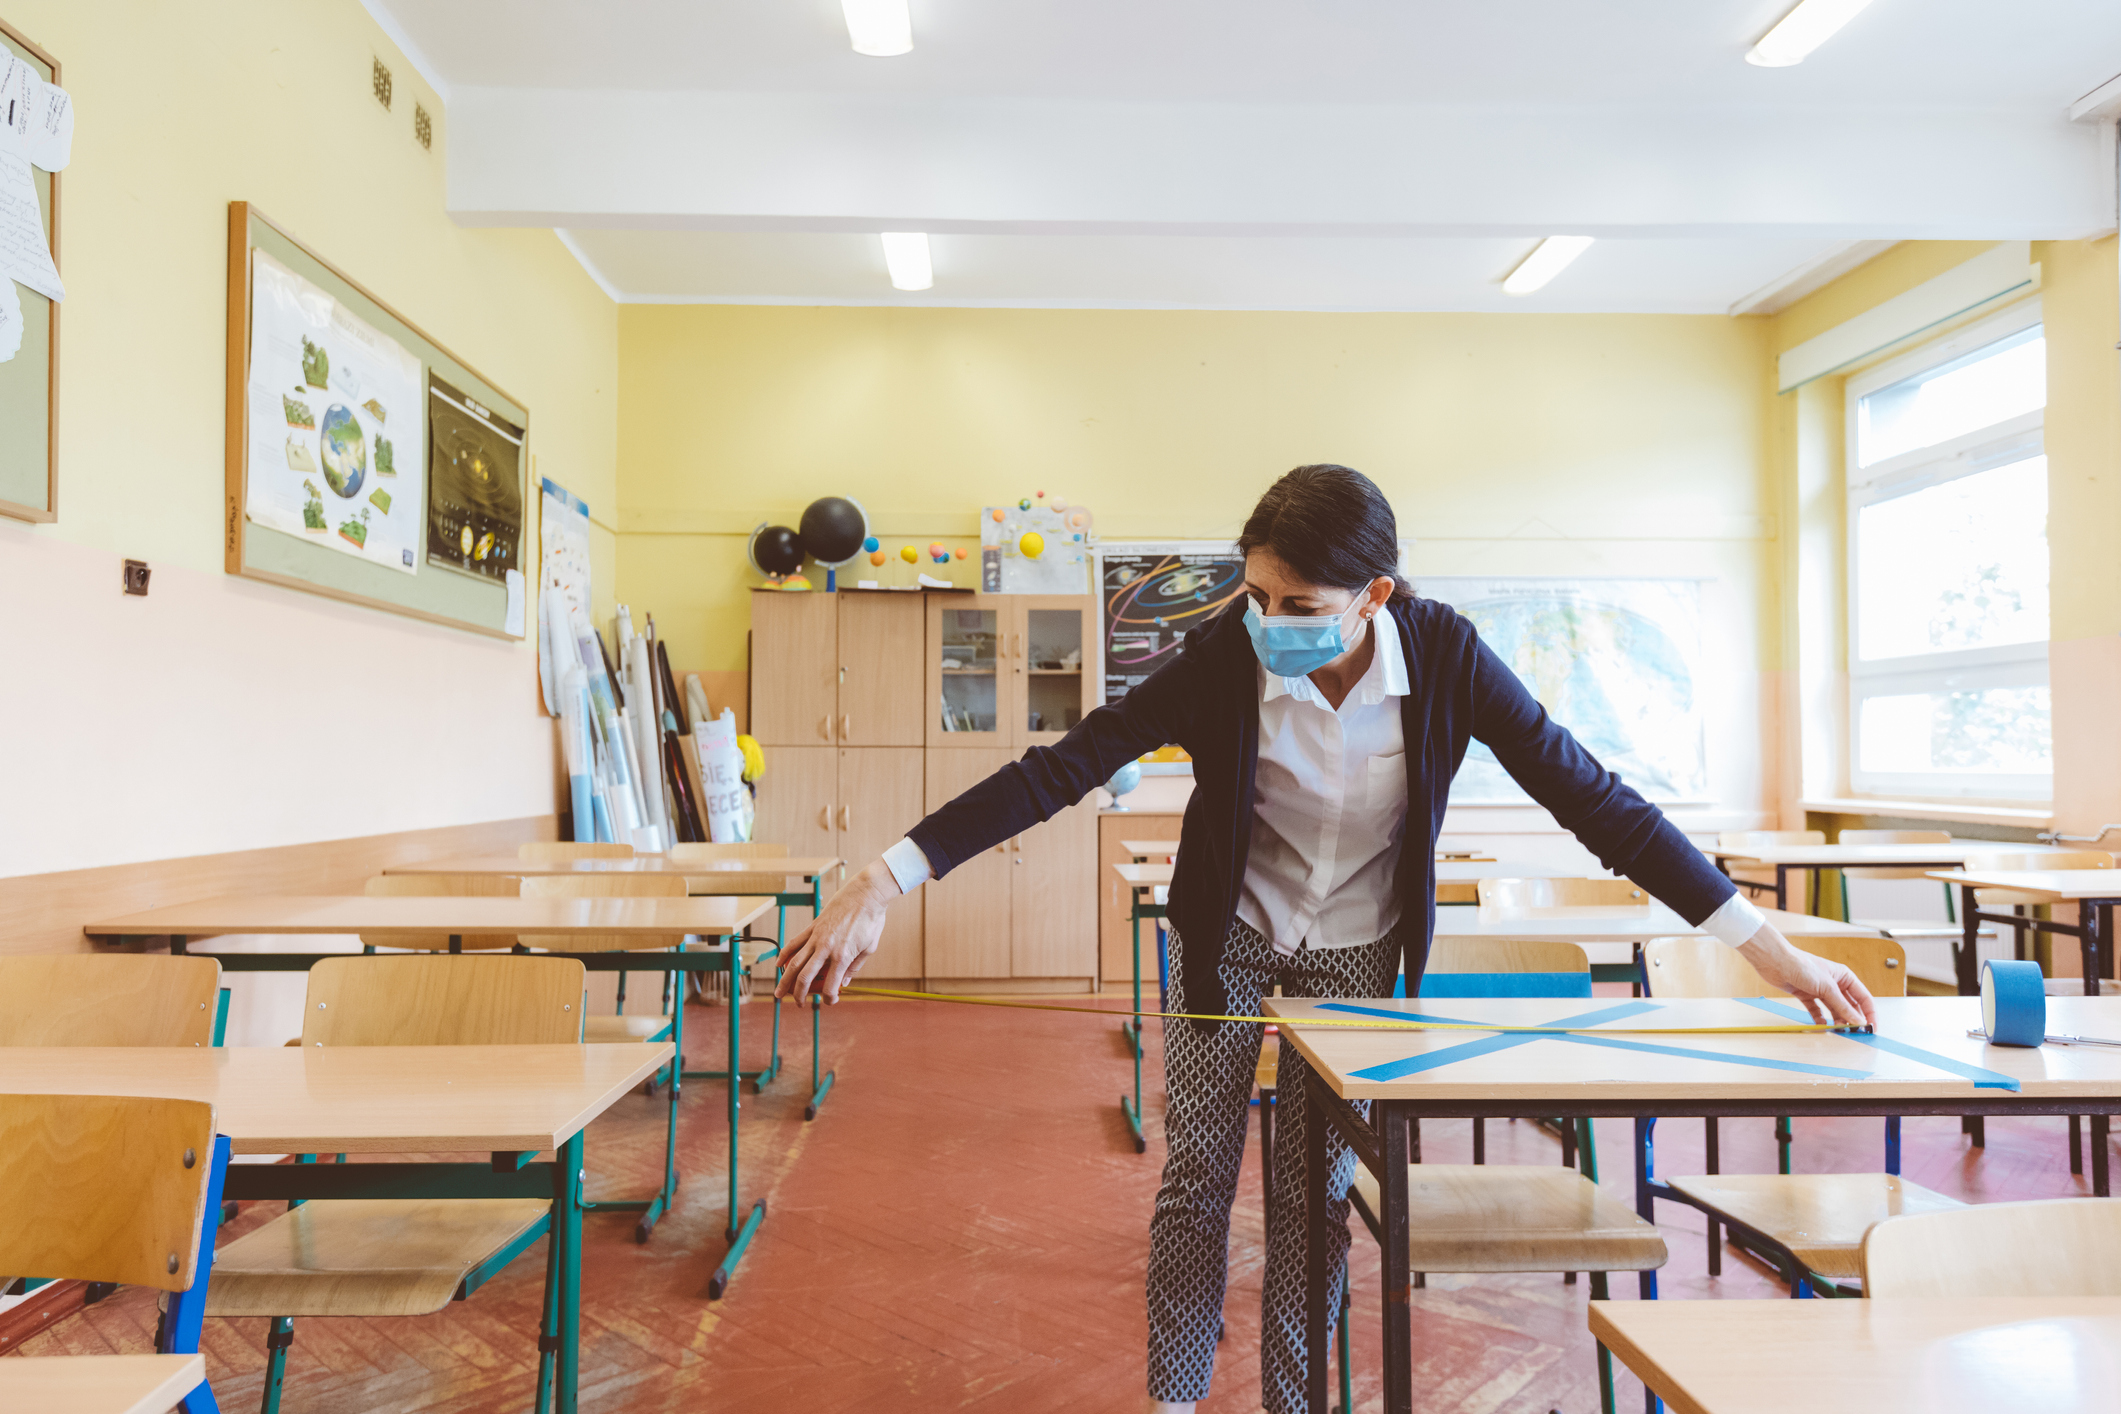 Female teacher measuring and marking places in the classroom that are to be empty after students return to school after the coronovirus pandemic. Covid-19